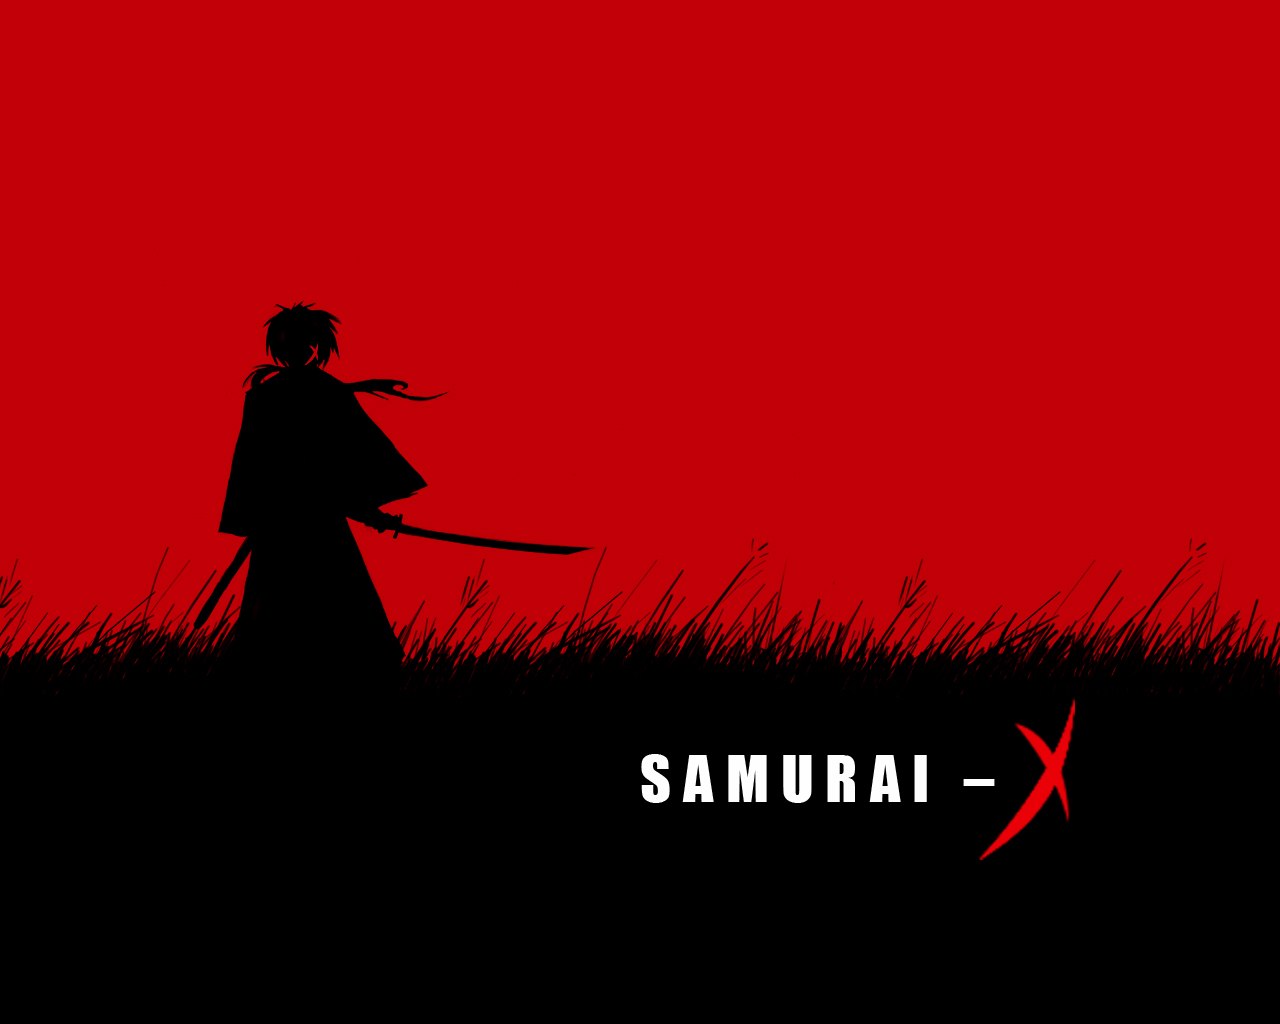 Comics Wallpaper: Samurai X Meeeeeeeeeh~. I've got to admit,I kinda miss